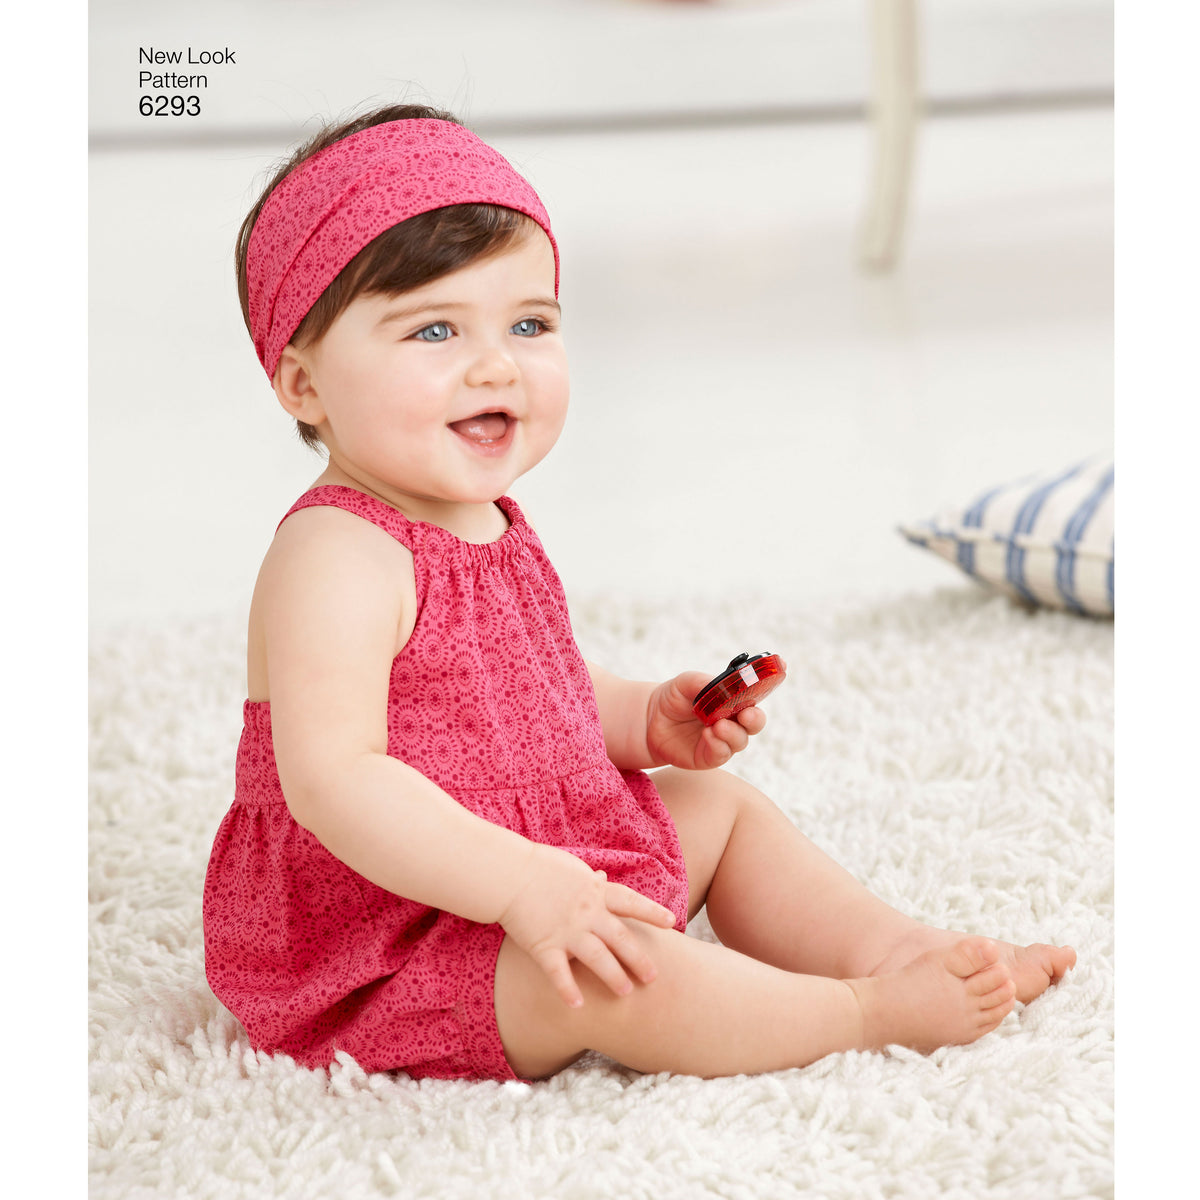 6293 Babies' Romper, Dress, Panties and Headband